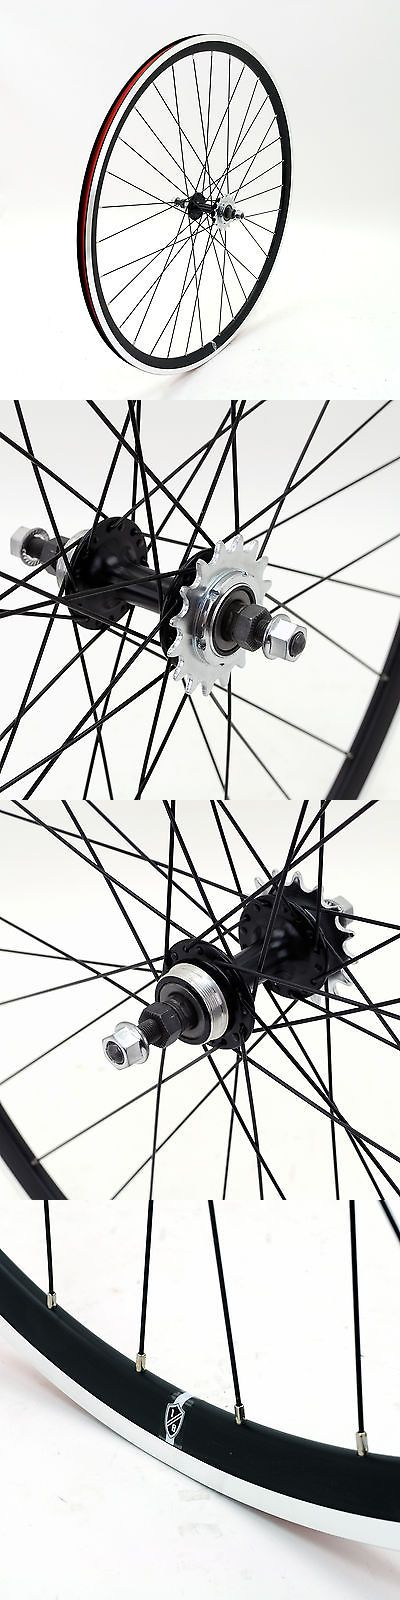 Wheels and Wheelsets 177830: Eighthinch Amelia Track 700C Rear Wheel // Fixed Gear/Single Speed // Black -> BUY IT NOW ONLY: $59.95 on eBay!